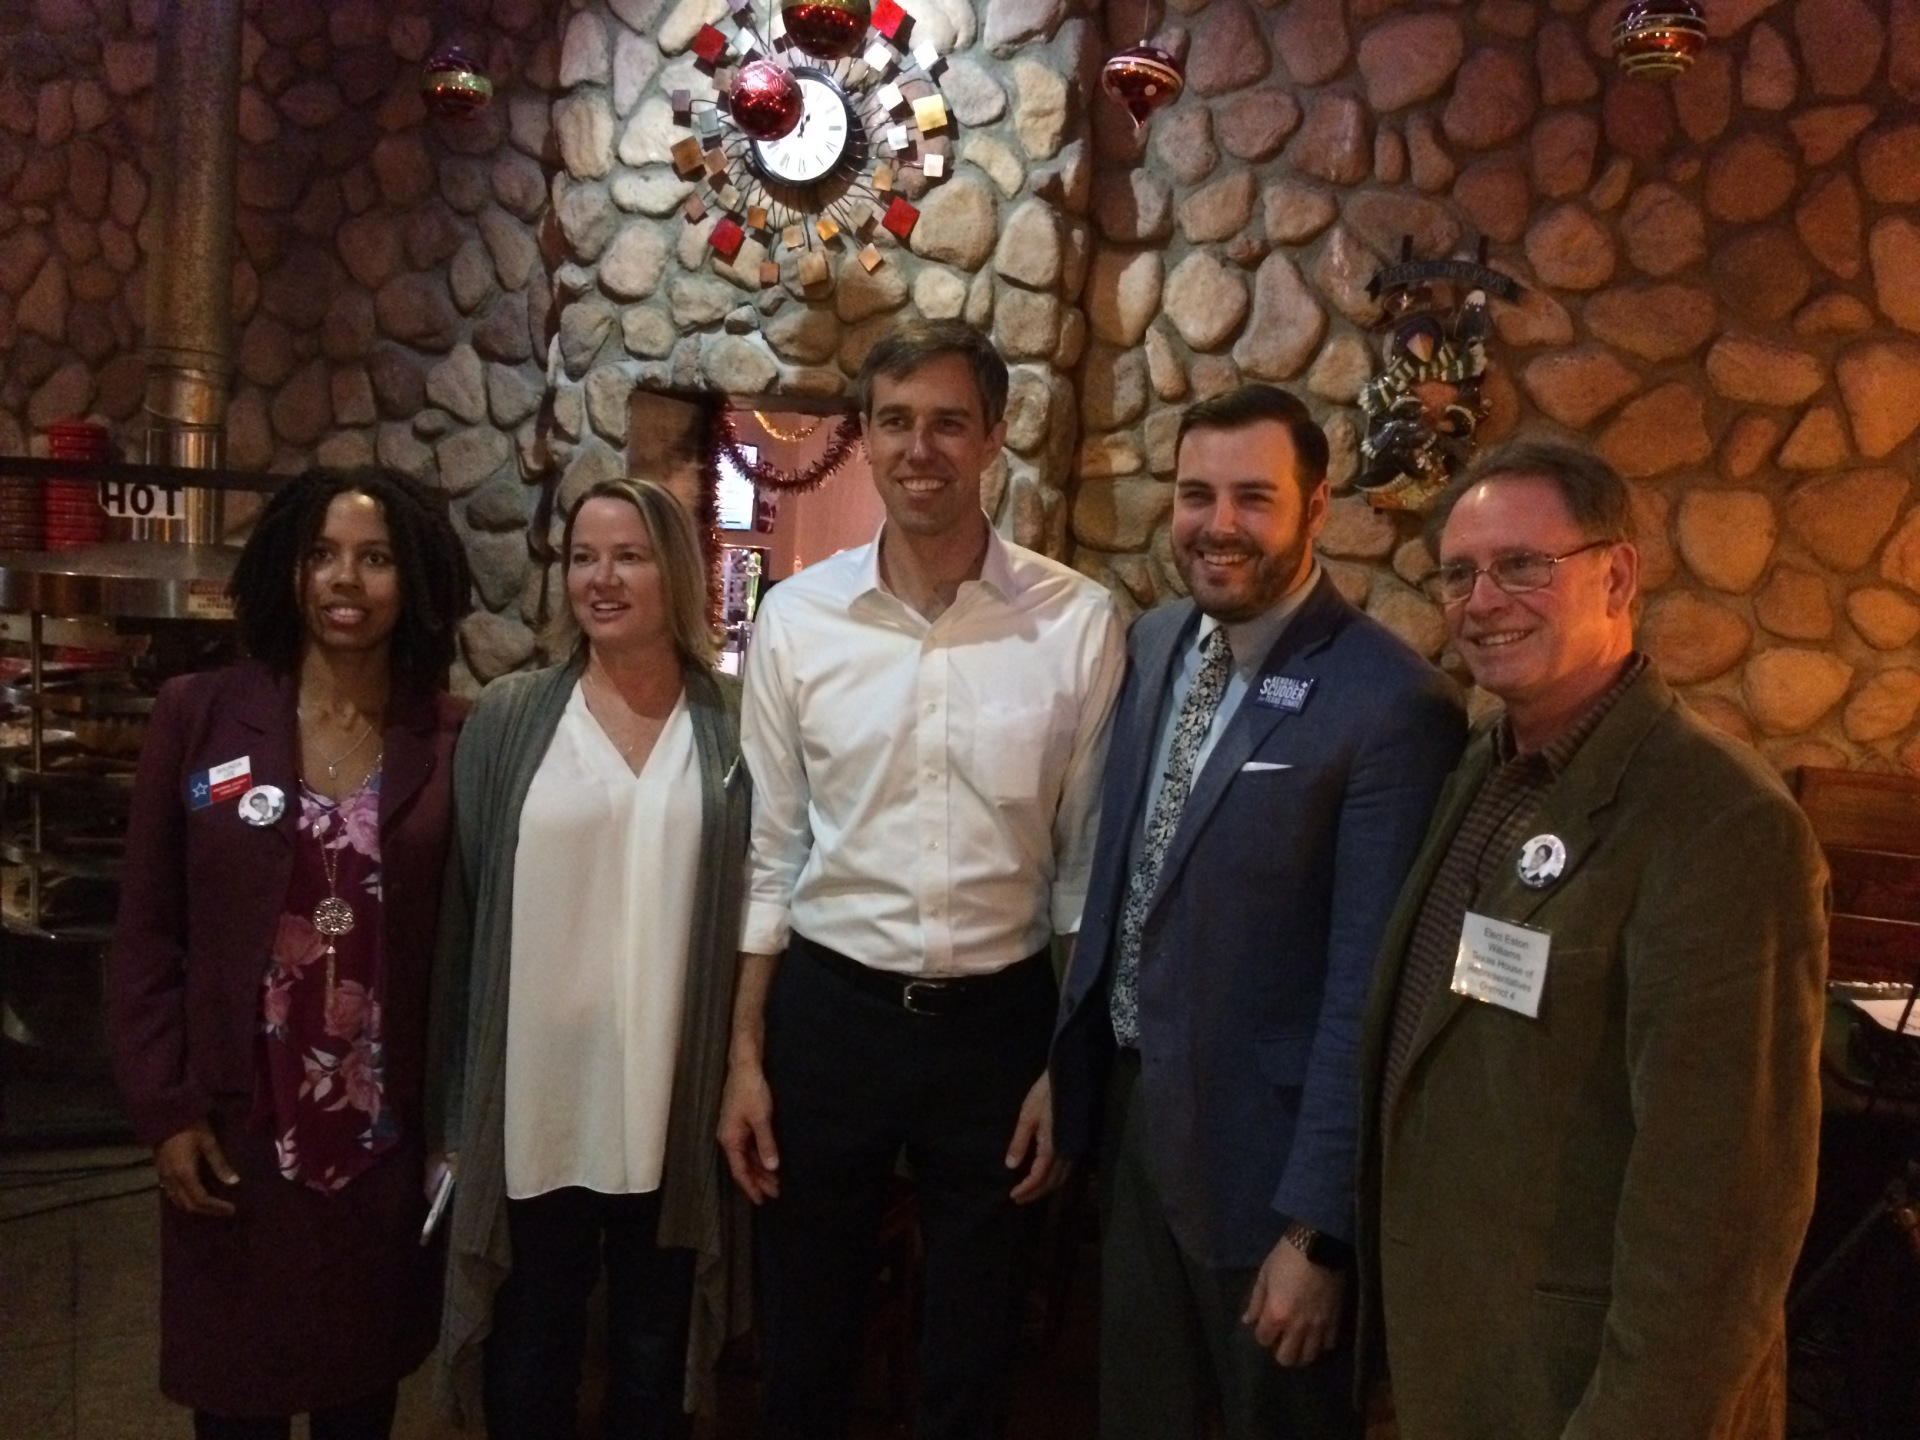 Beto O'Rourke US Senate candidate meets with local candidates